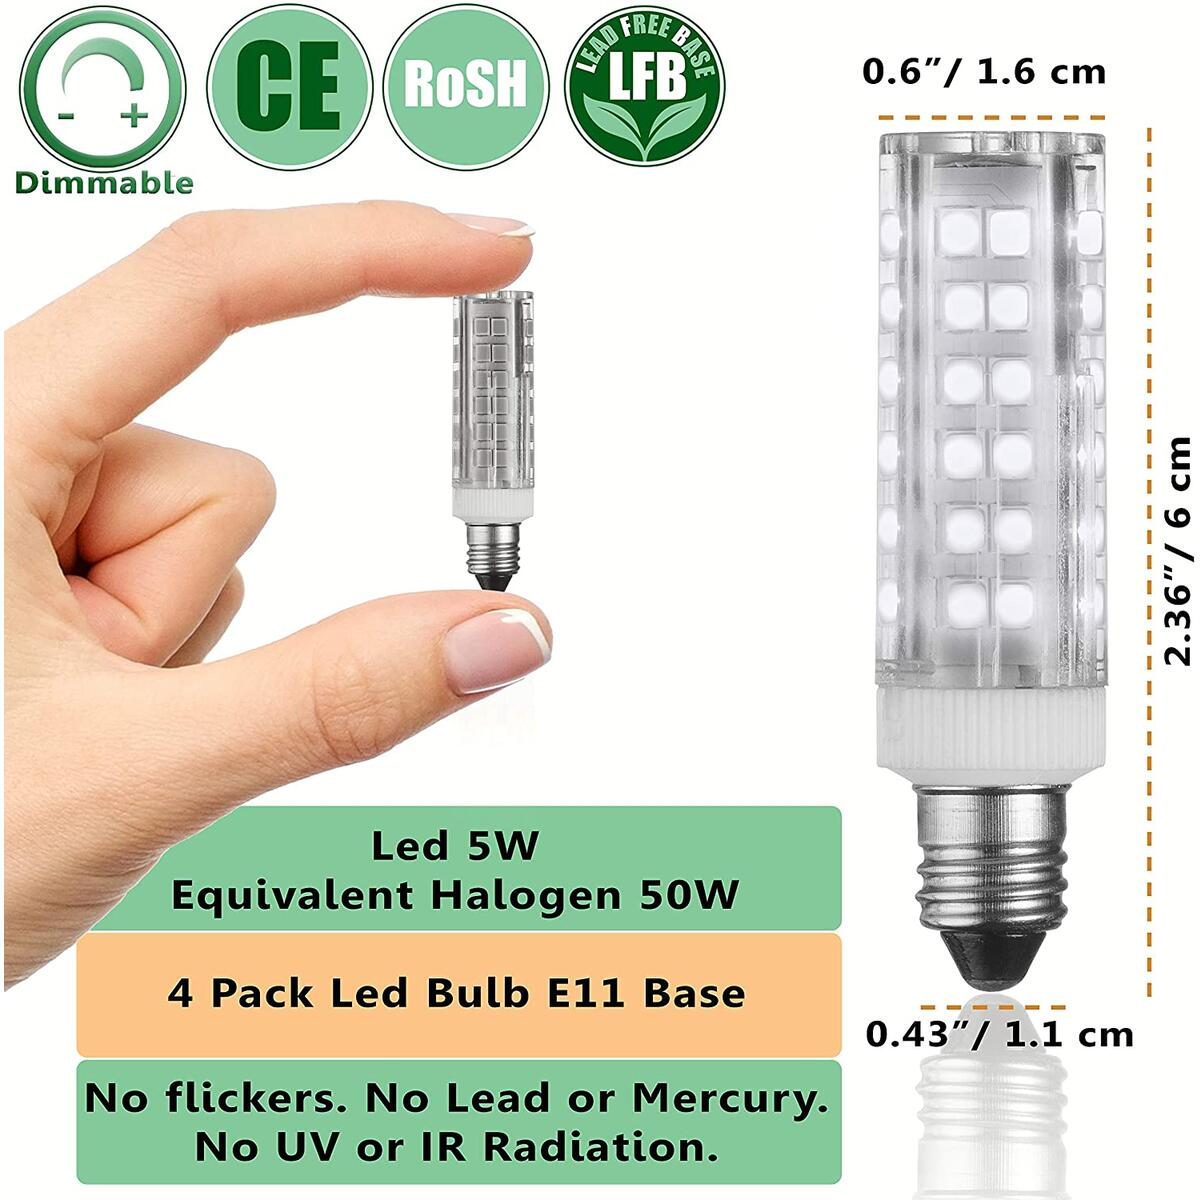 E11 LED Bulbs – 5W - 50W Halogen Replacement - Dimmable - Mini-Candelabra Base Light Bulb - Replaces T4 /T3 JDE11 – Day Light 6000K - for Ceiling Fans, Cabinet Lighting, Sconce & More- 4 Pack